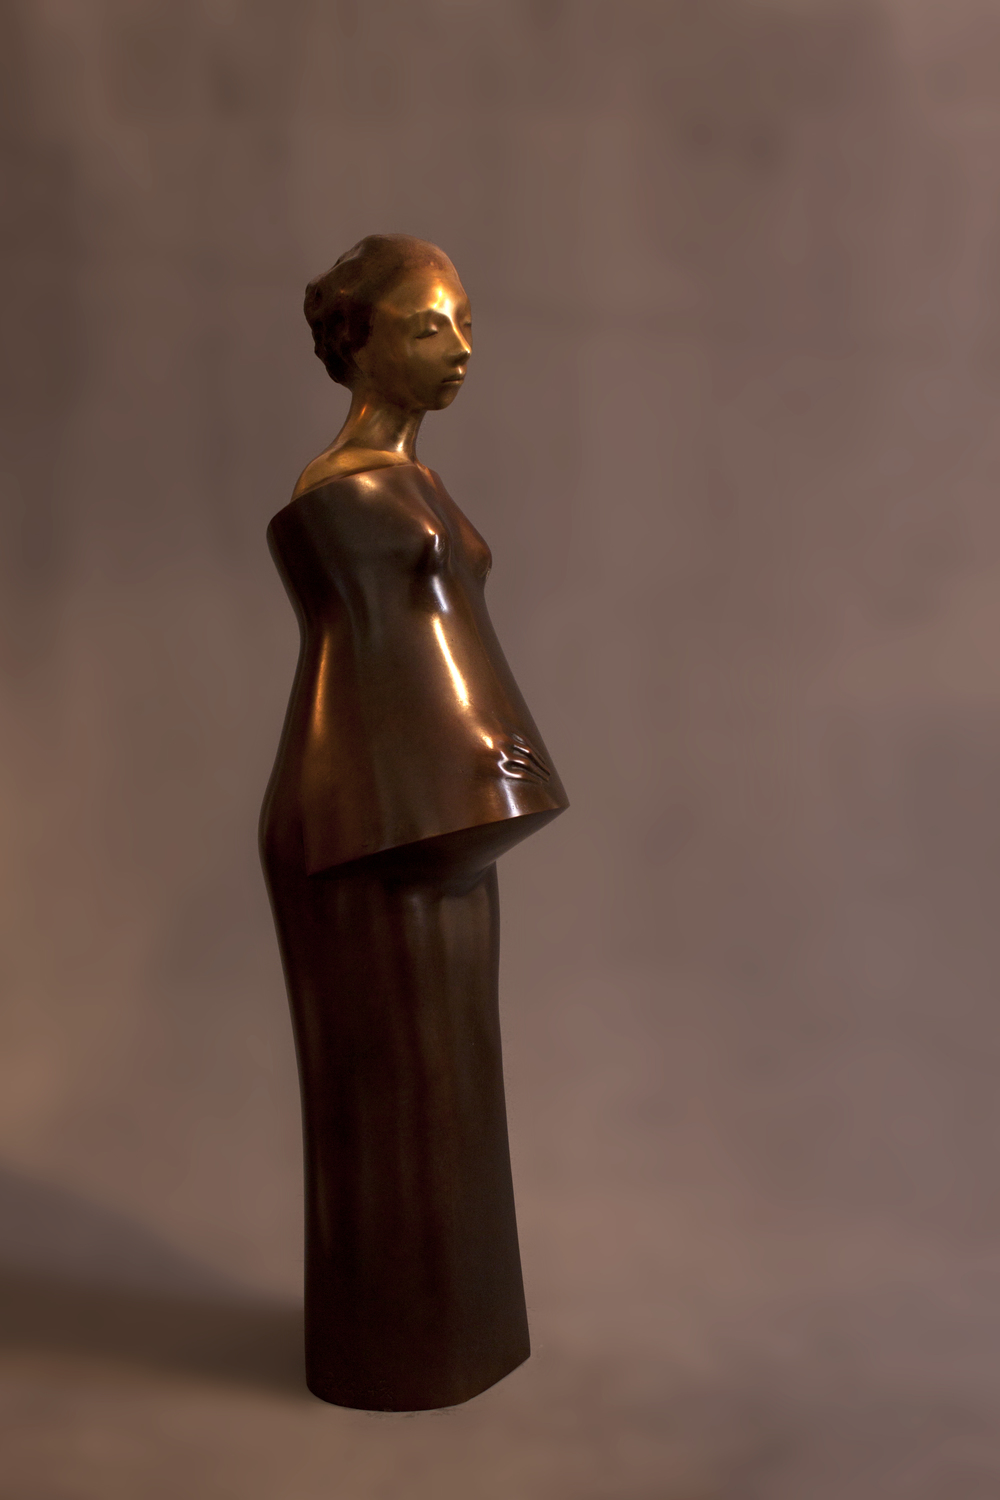 Khaled zaki // the pregnant 2014, bronze 77 x 18 x 20cm